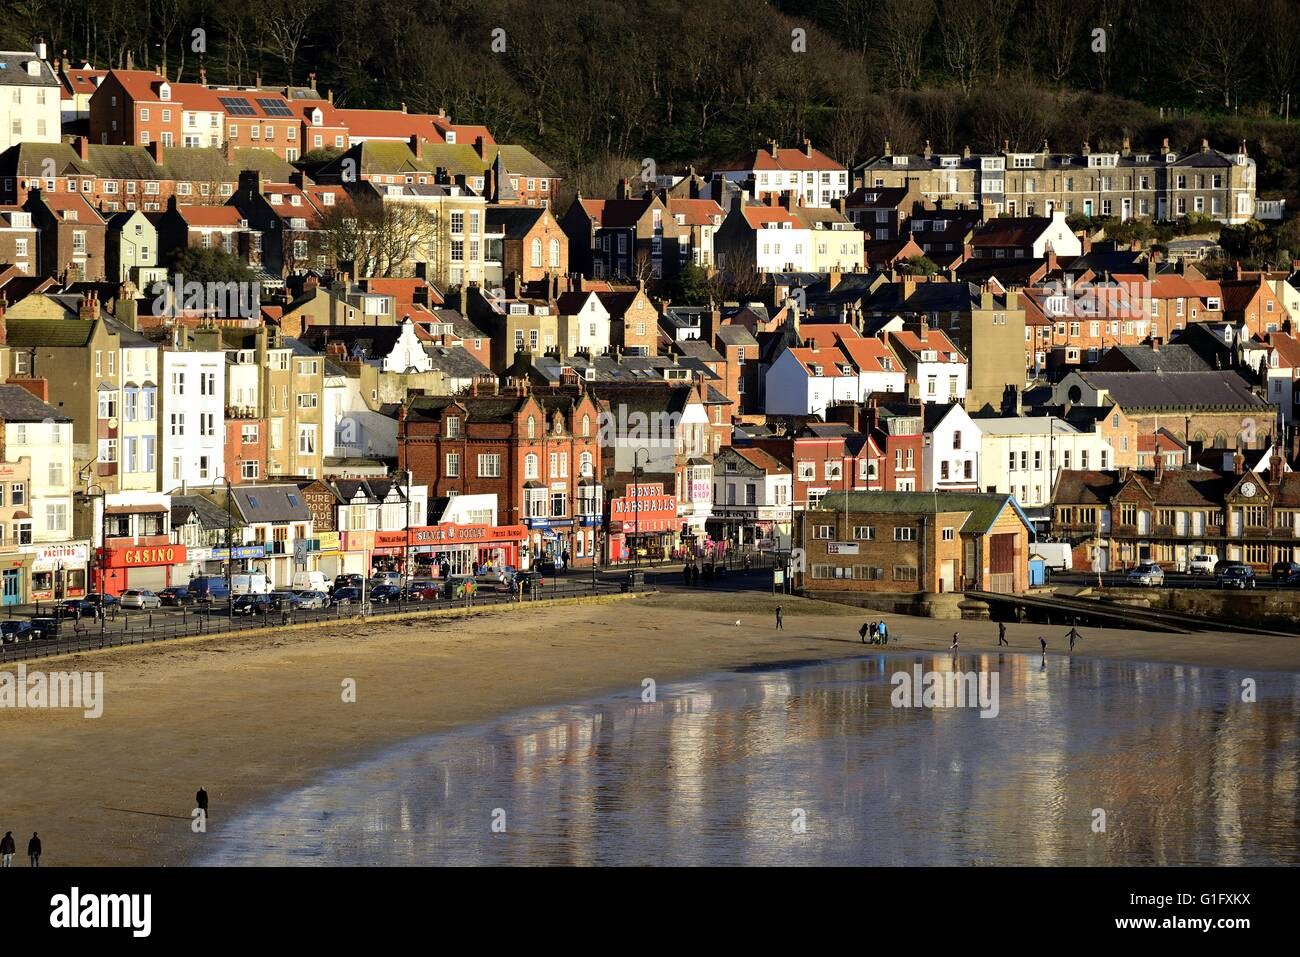 Scarborough South Beach - Stock Image